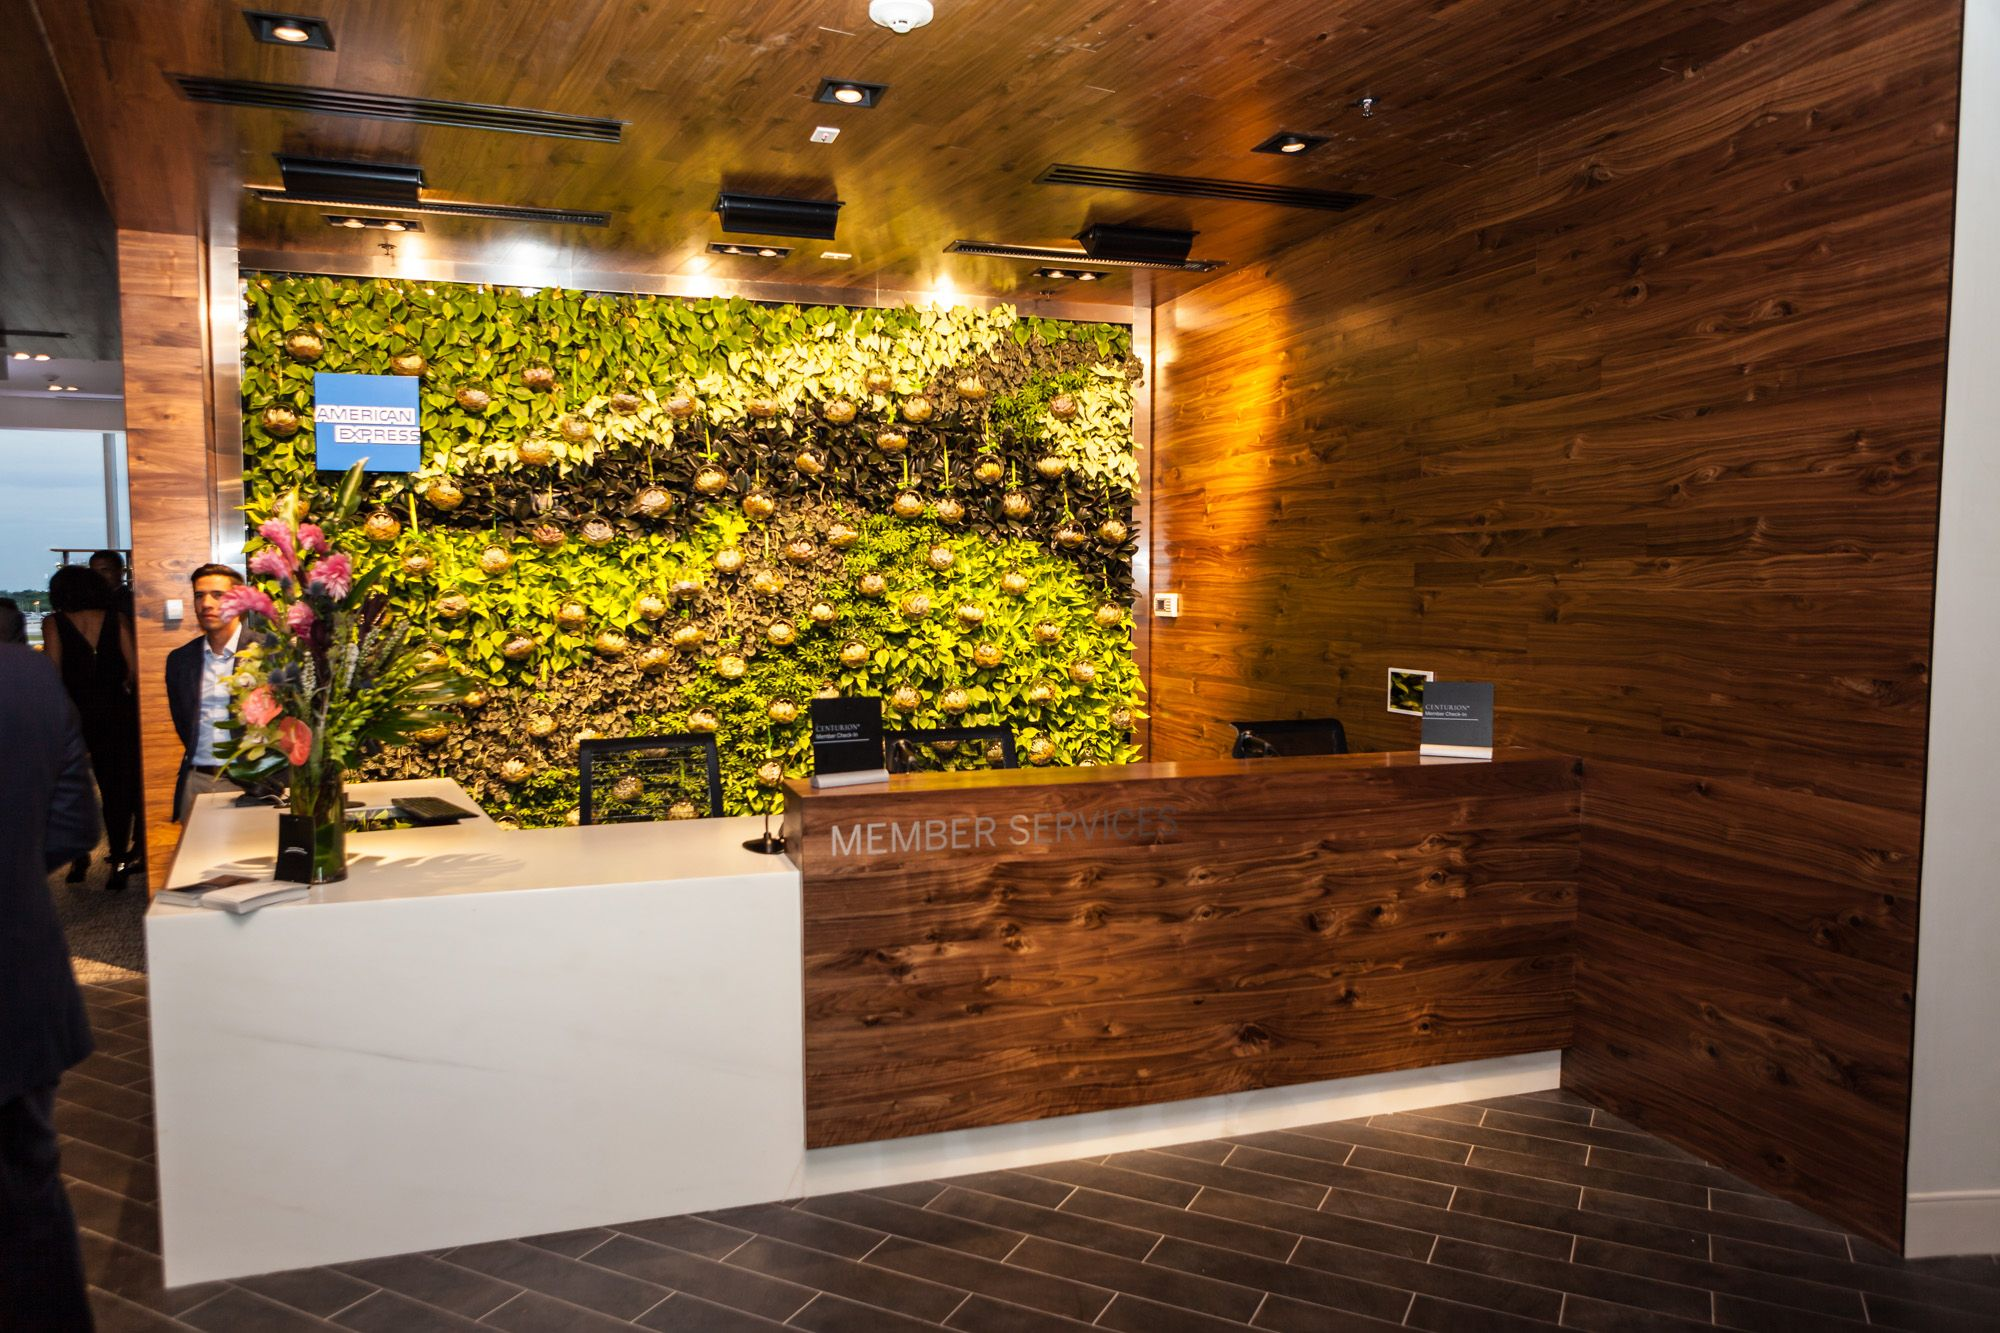 Lounge Review: American Express Centurion Lounge at Miami International Airport